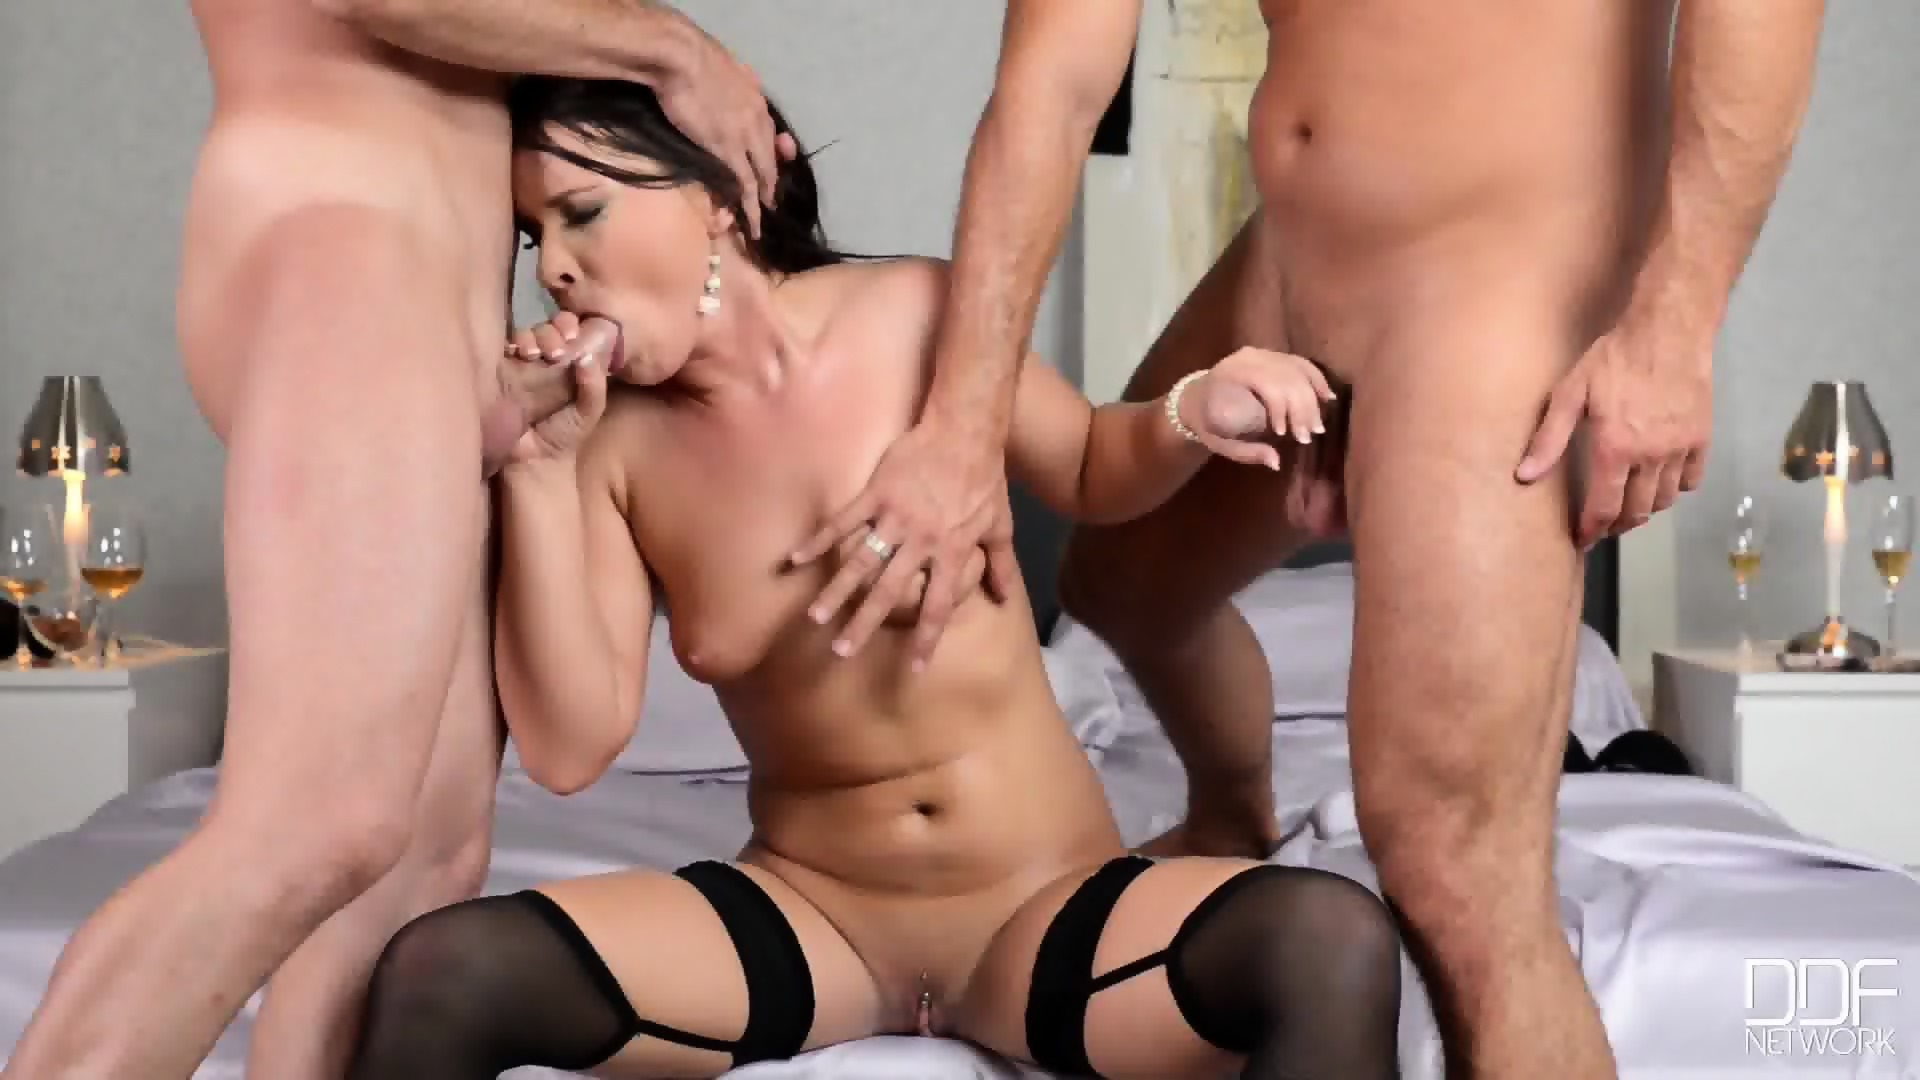 Ebony Sucks Two Black Cocks